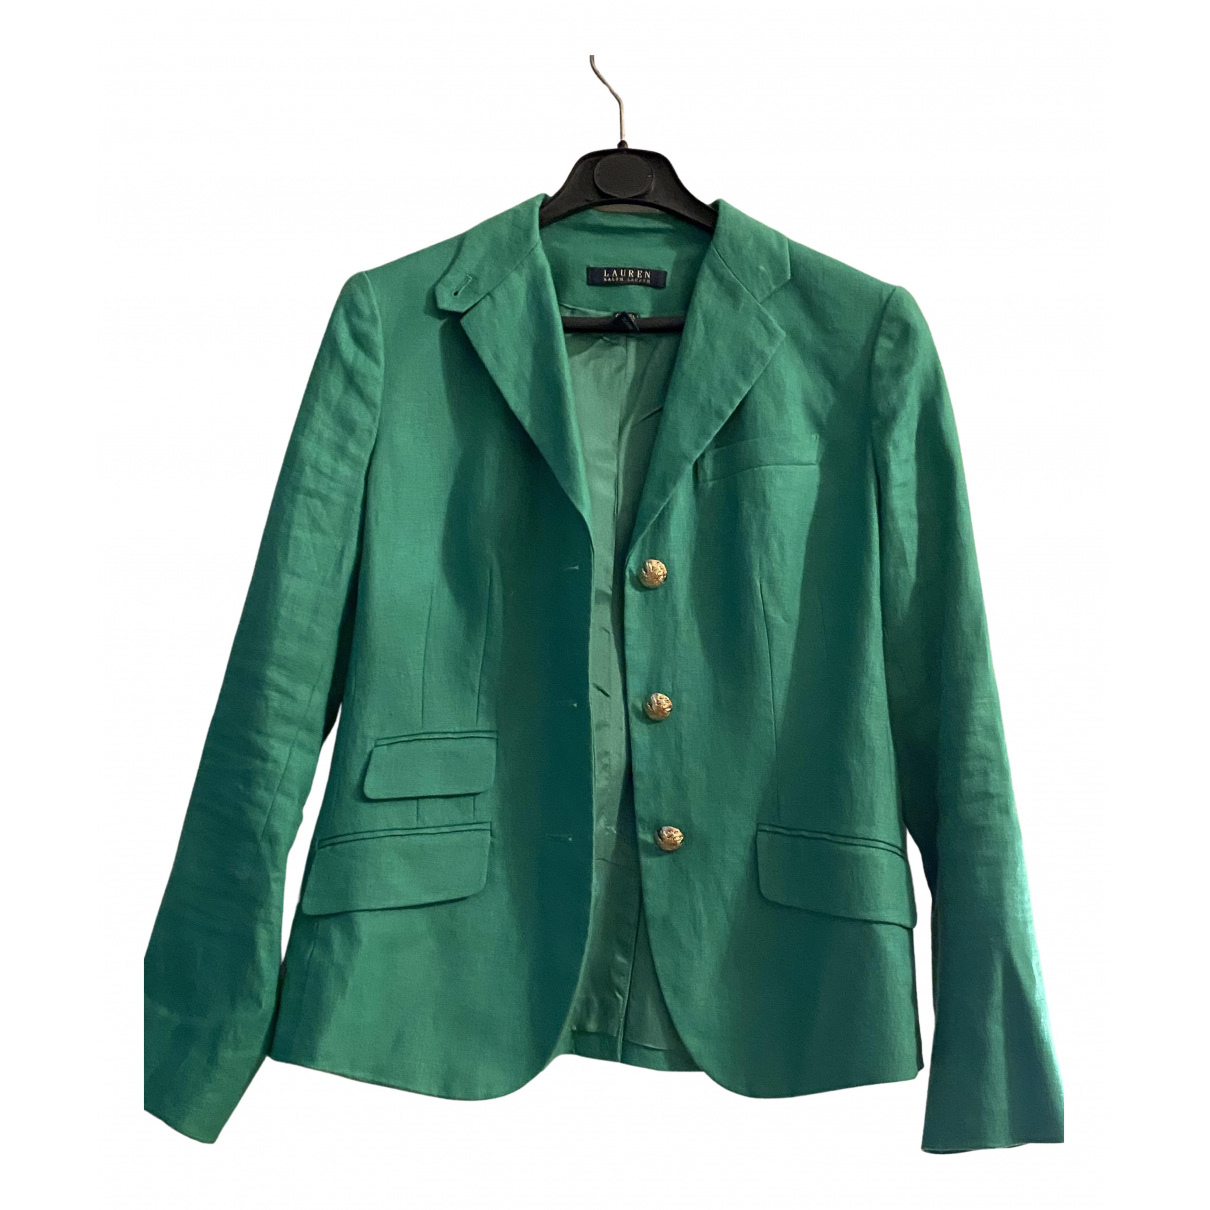 Lauren Ralph Lauren N Green Linen jacket for Women 4 US